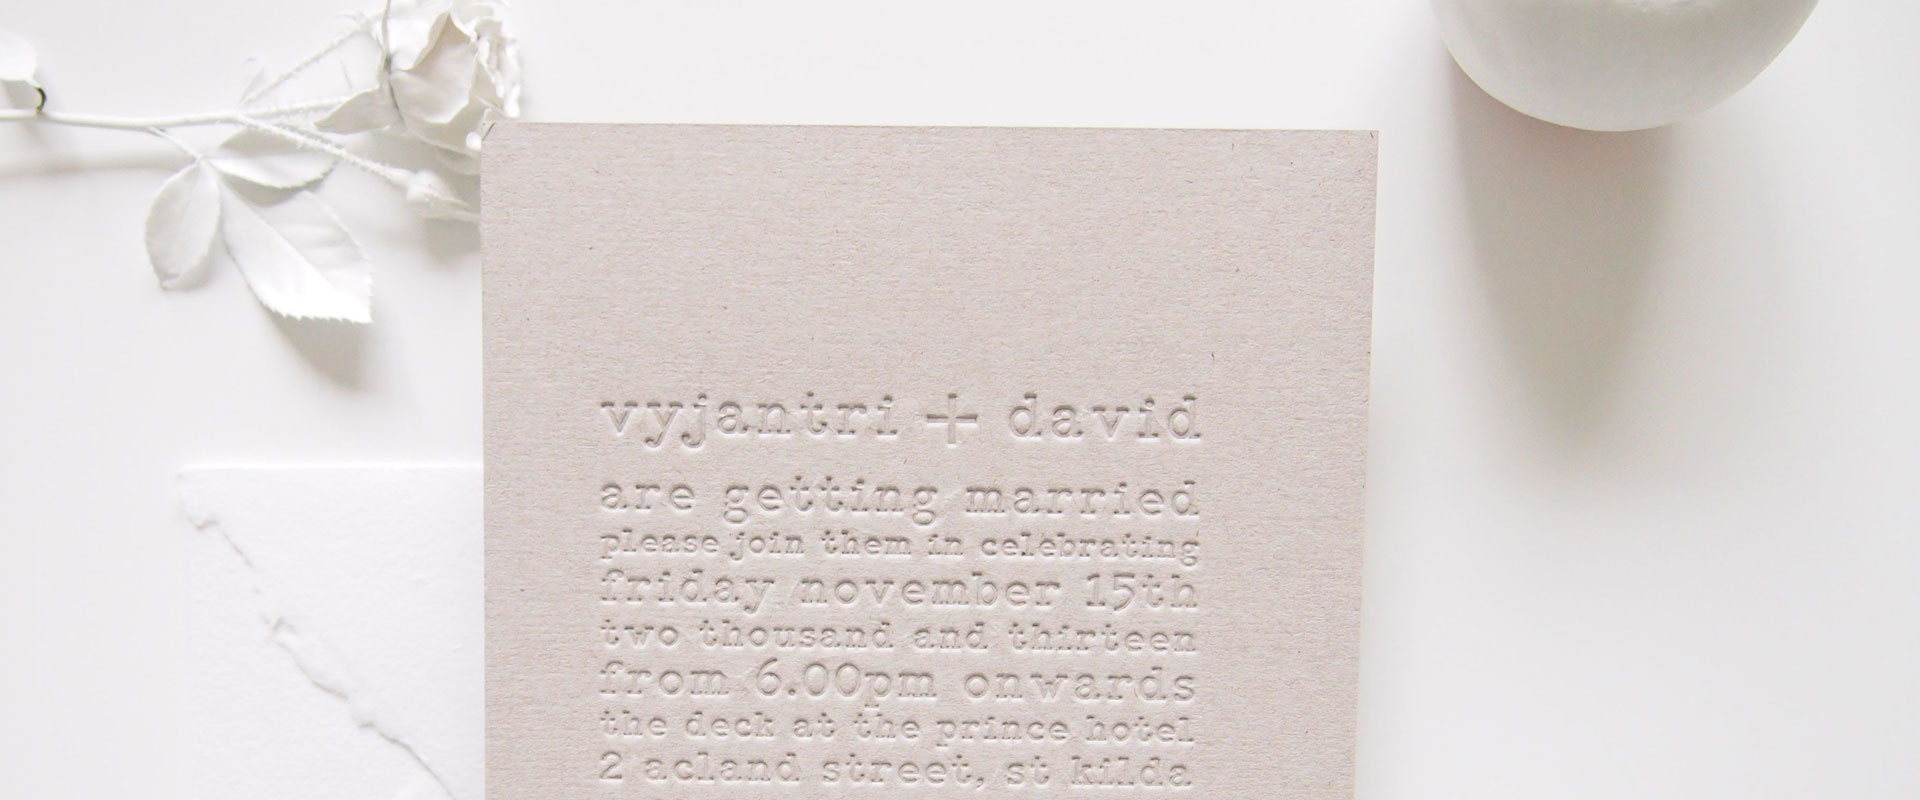 Maytide Ethical Wedding Stationery - Typography